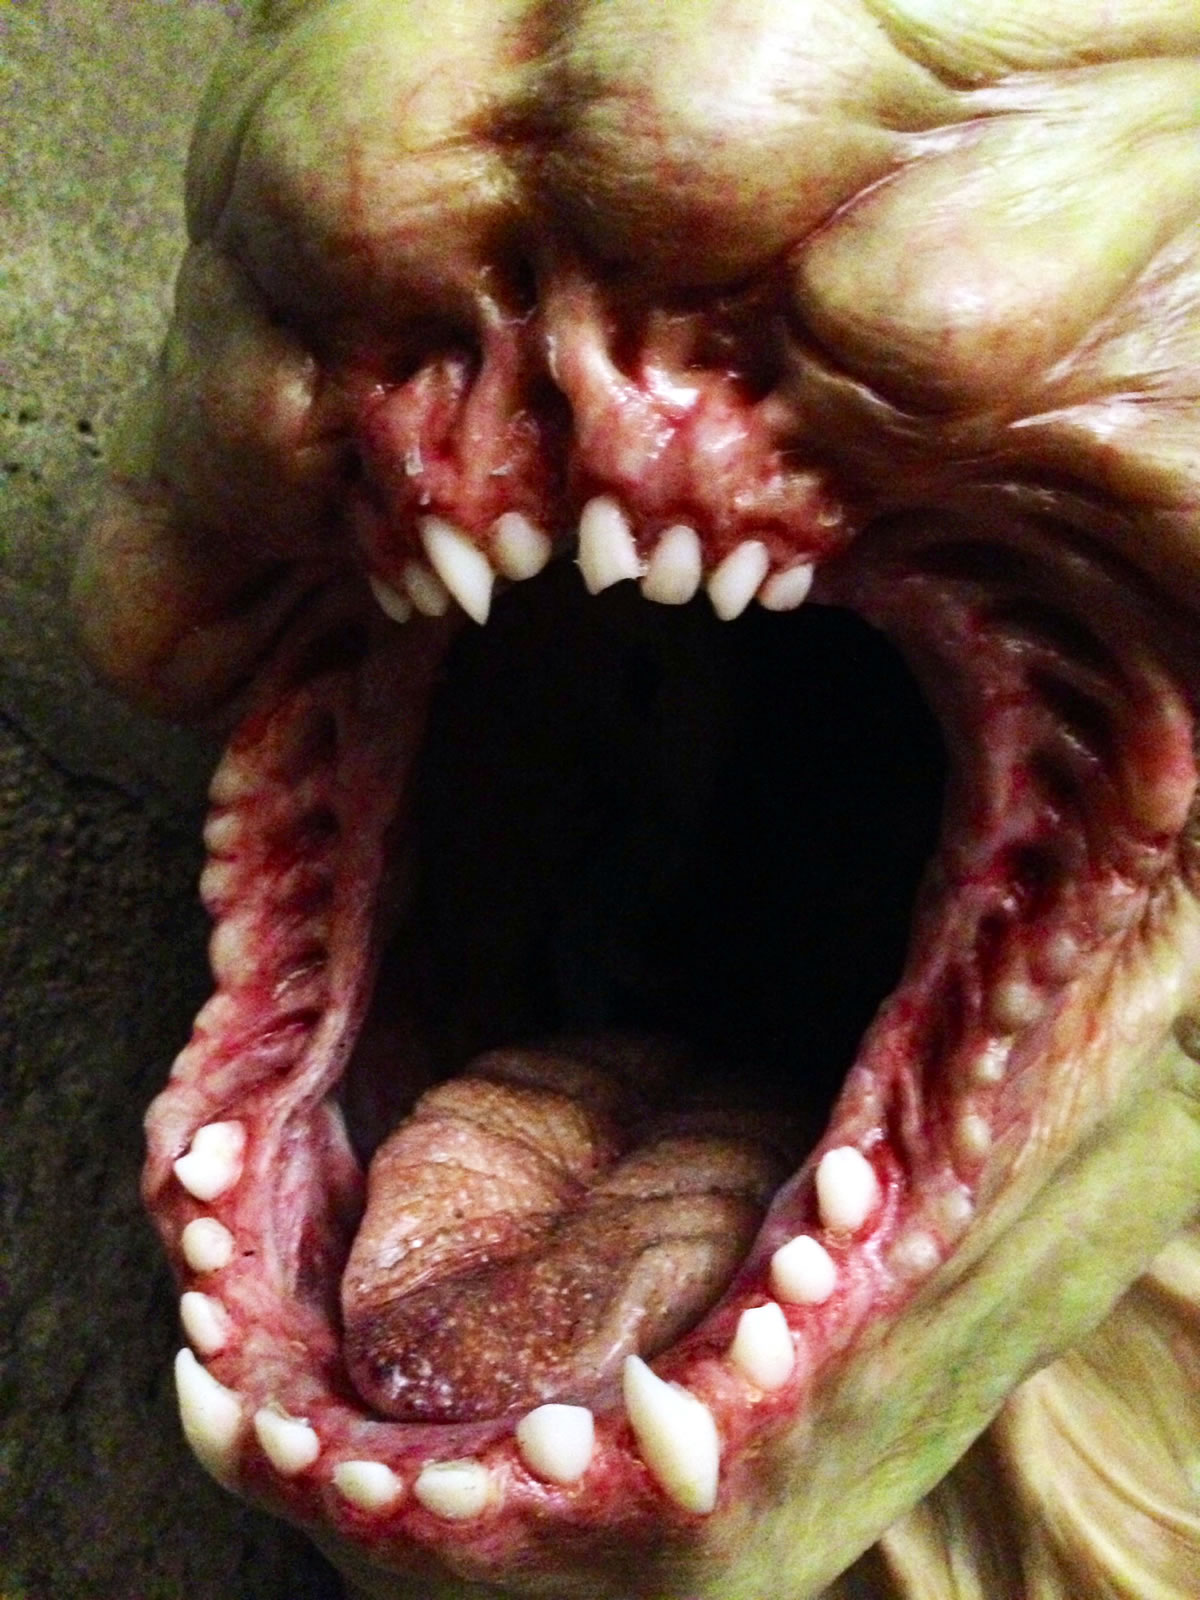 Griever Mouth from 'The Maze Runner'